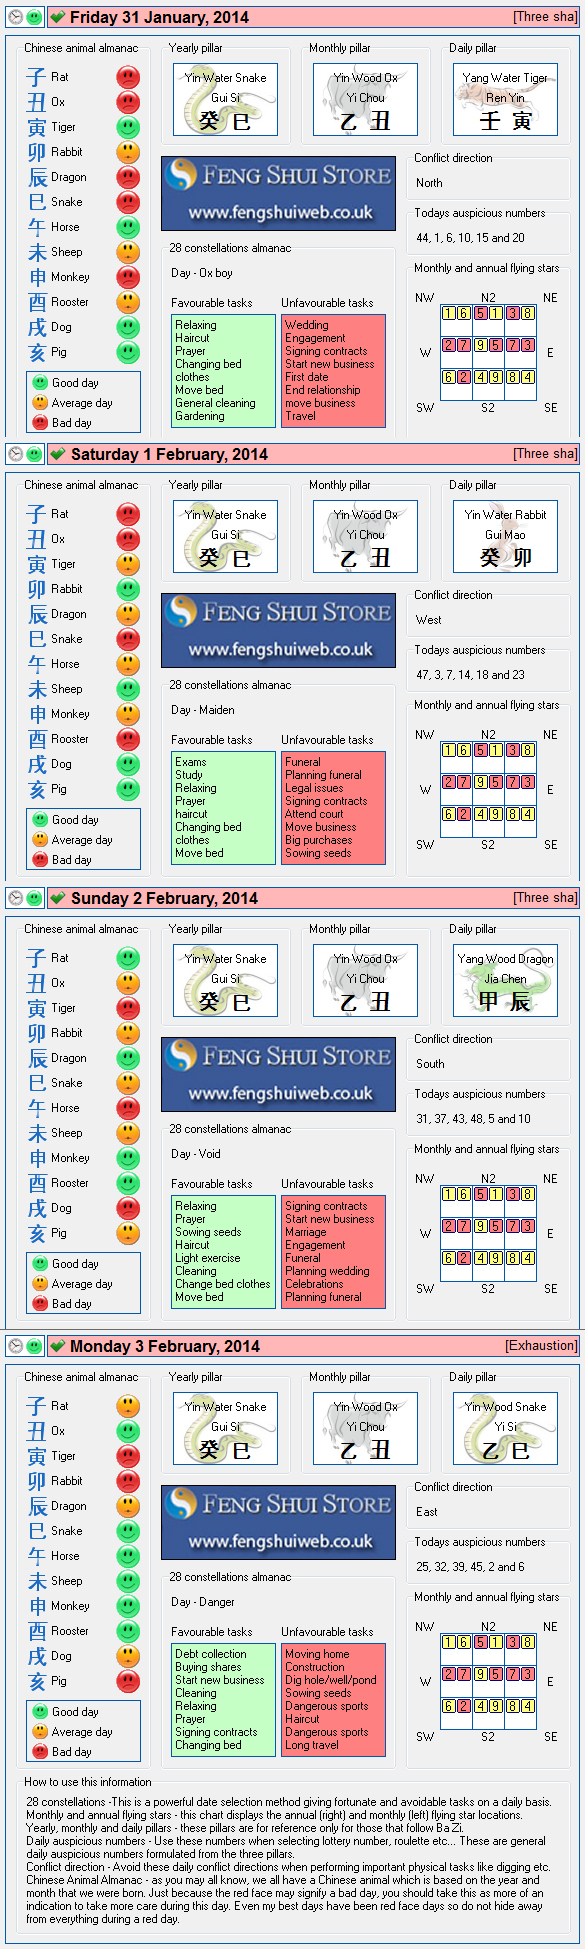 Tong Shu Almanac for Friday 31st January - Monday 3rd February 2014